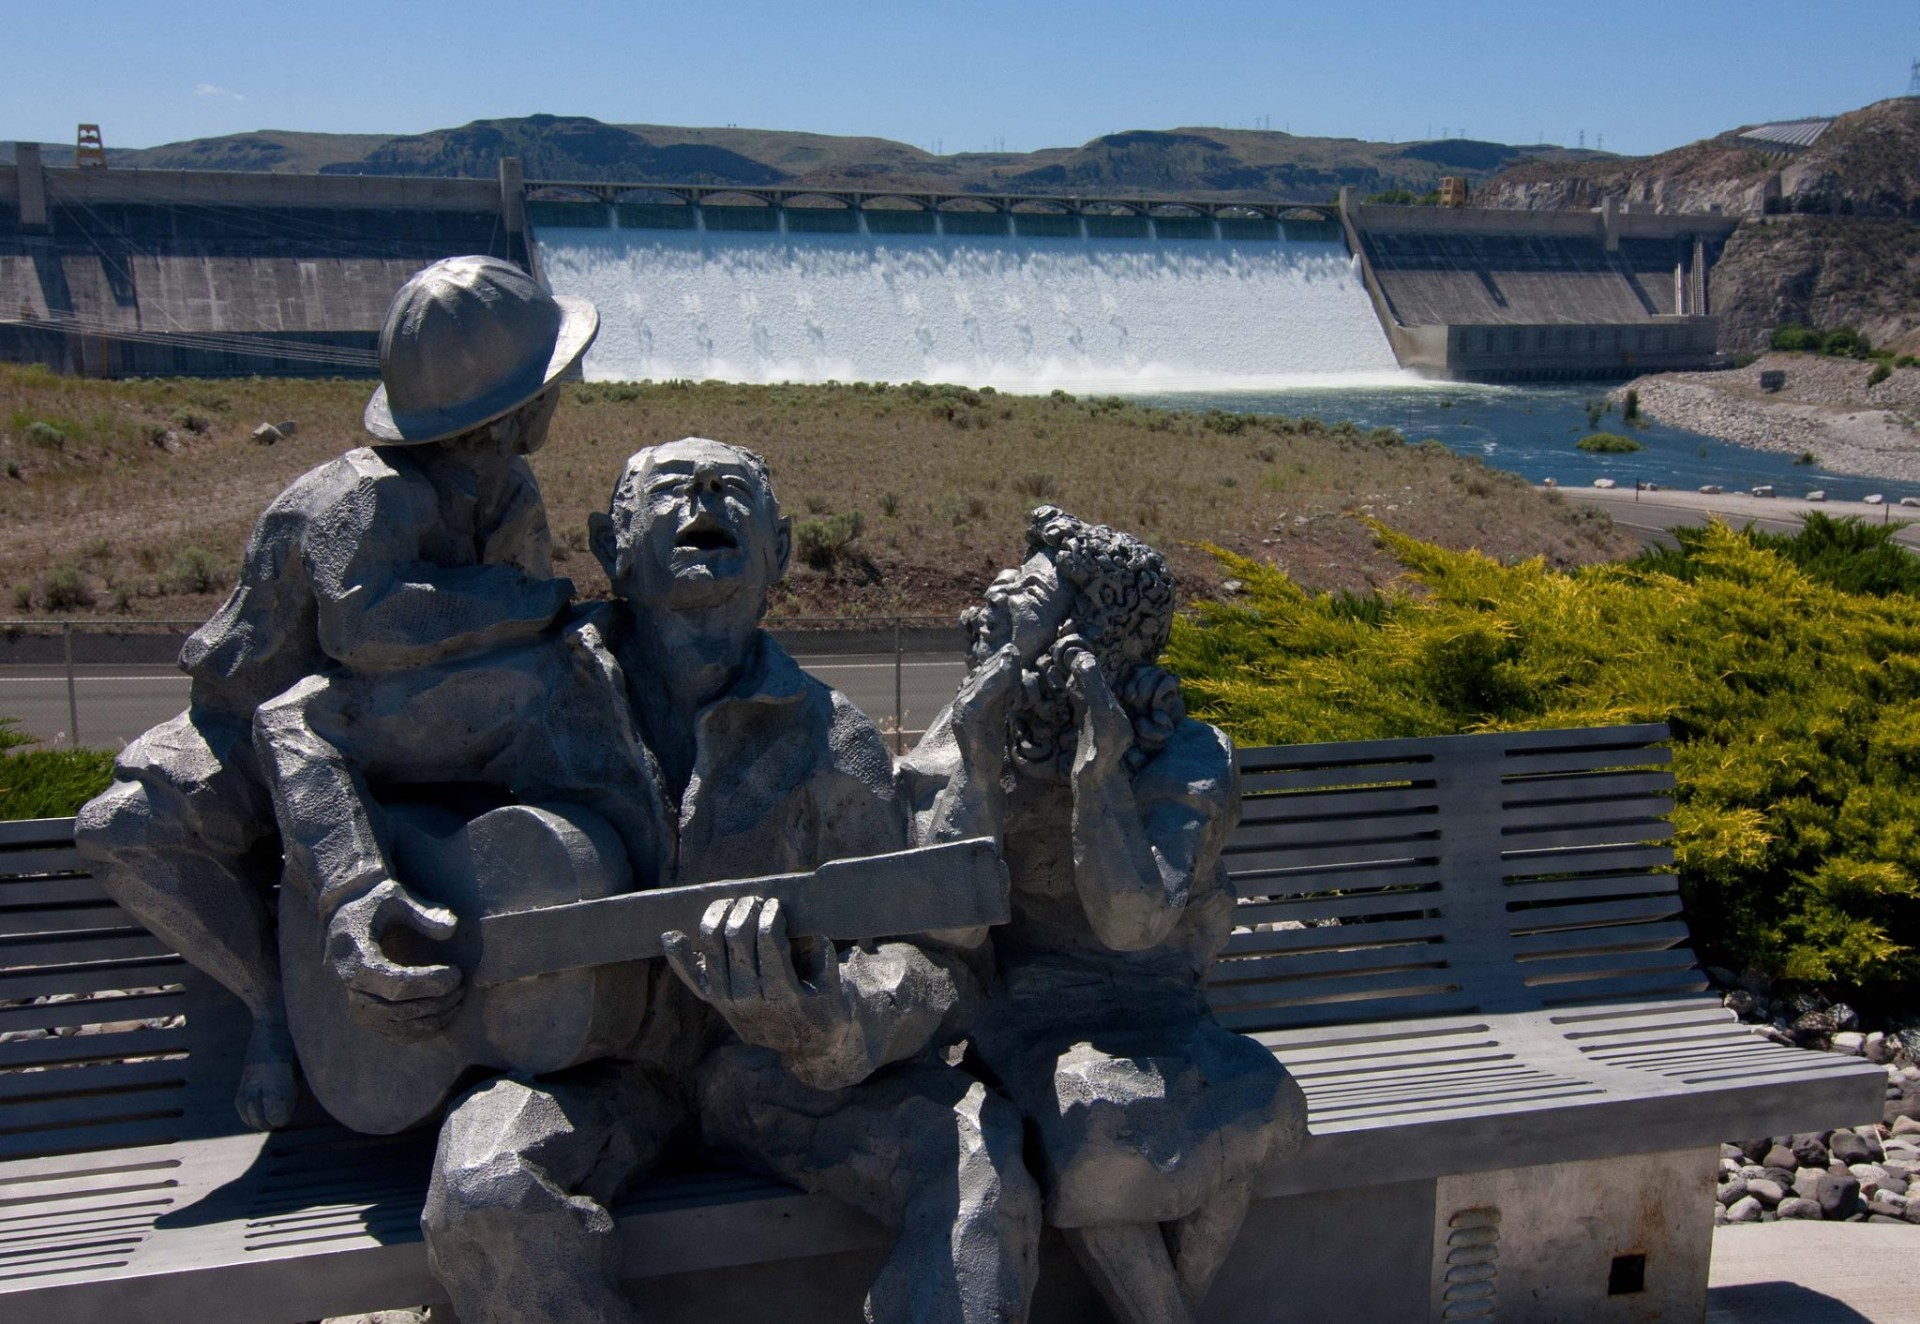 Historical walking tour of grand coulee dam publicscrutiny Choice Image